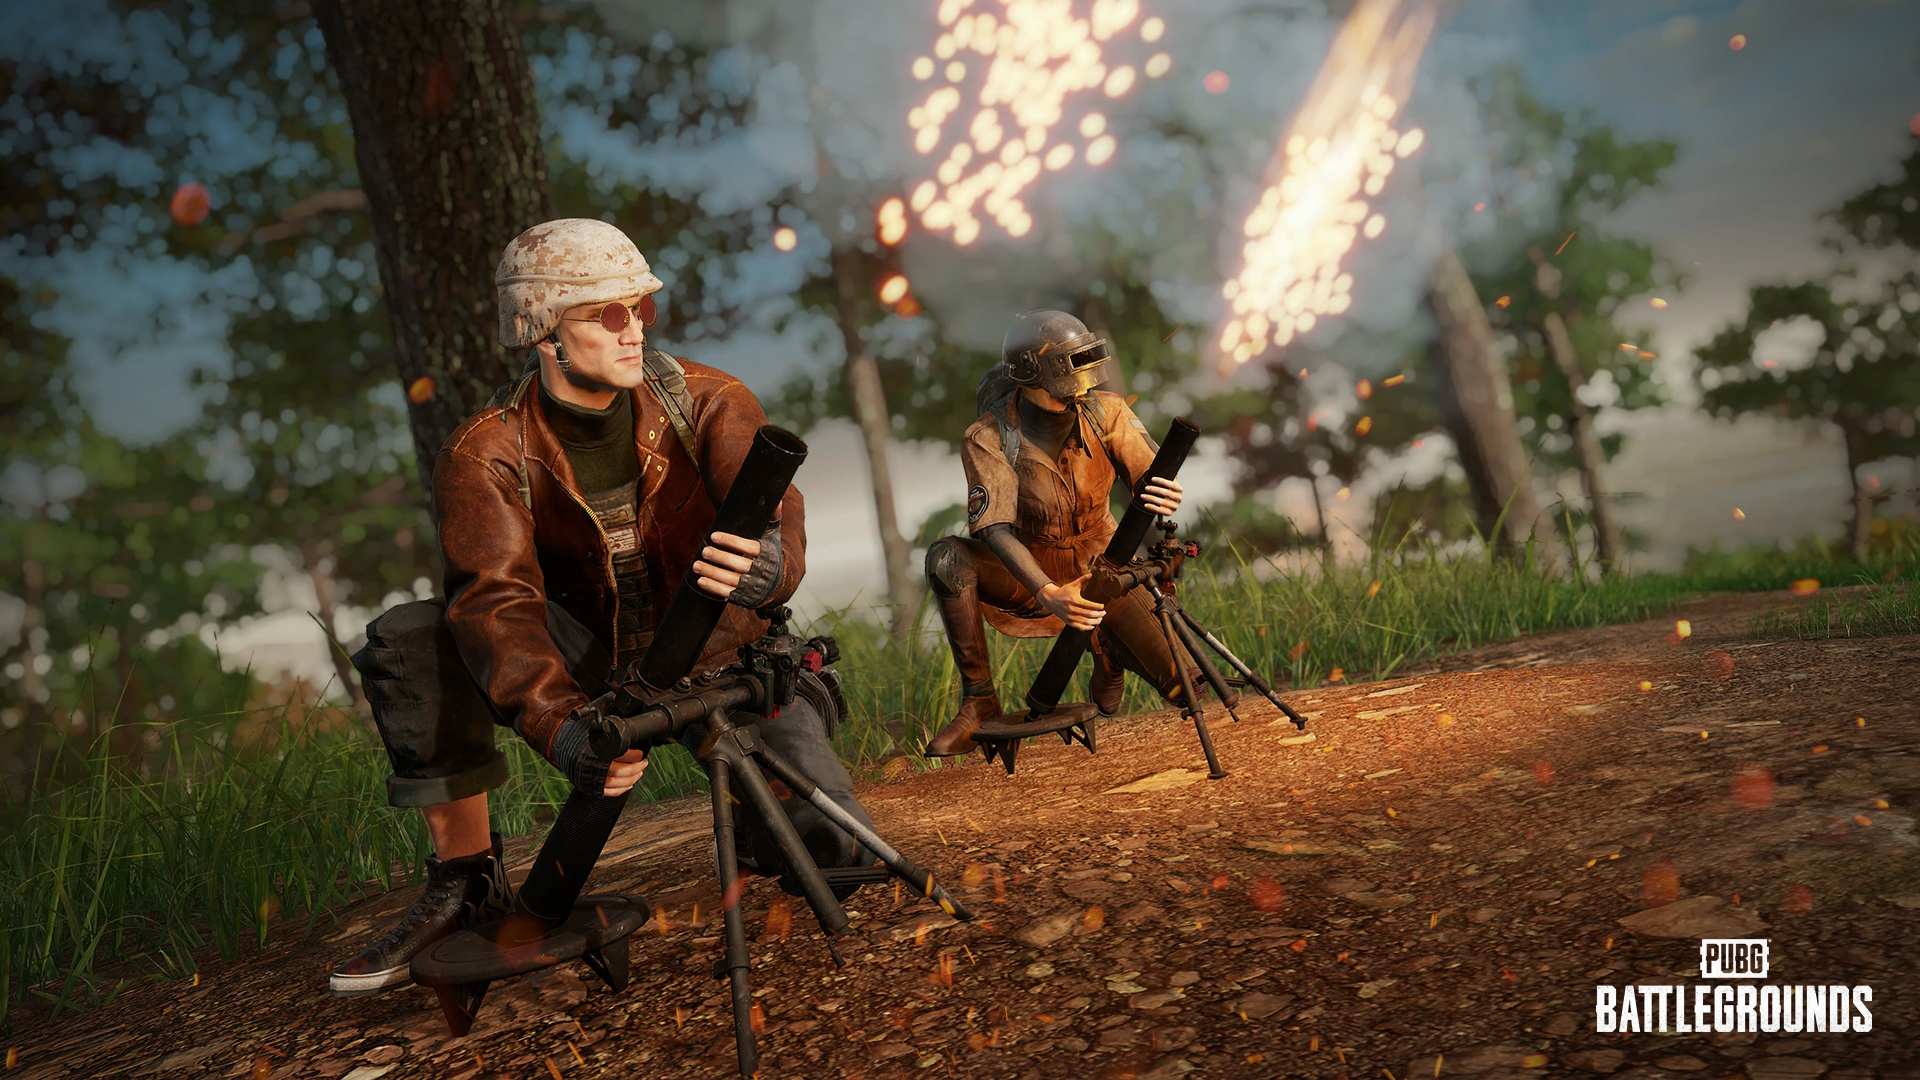 Players launch mortars at their enemies in Player Unknown's Battlegrounds